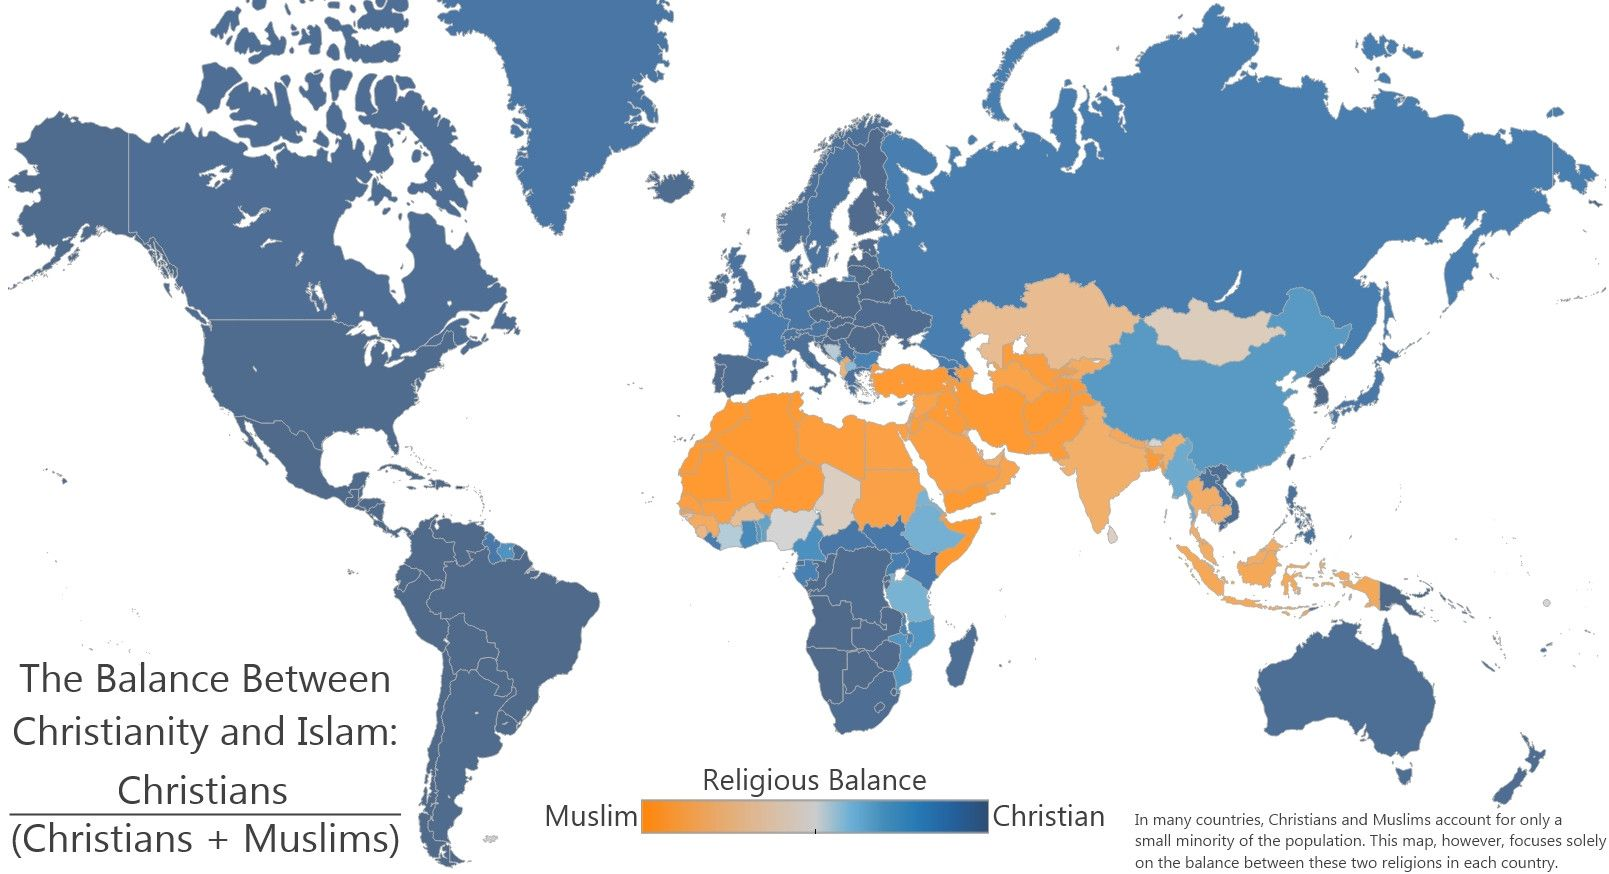 The Balance Between Christianity and Islam | Maps and Atlas ... on algeria in the world map, freedom in the world map, india in the world map, california in the world map, daoism in the world map, north america in the world map, christmas in the world map, russia in the world map, abortion in the world map, sikhism in the world map, buddhism in the world map, germany in the world map, racism in the world map, ireland in the world map, australia in the world map, israel in the world map, democracy in the world map, hawaii in the world map, egypt in the world map, cancer in the world map,